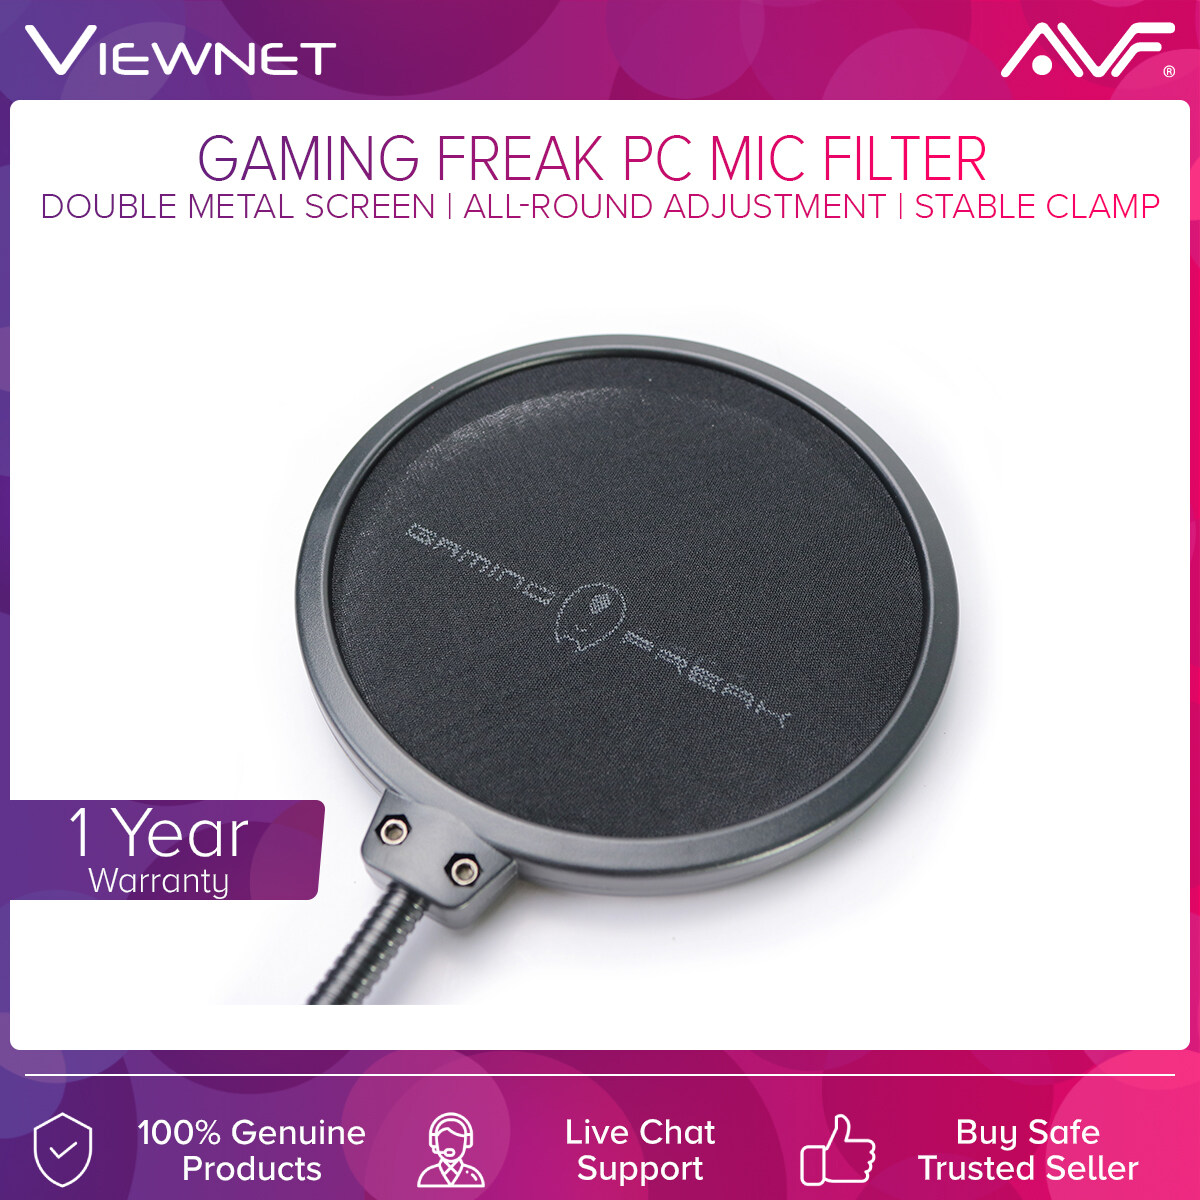 AVF Gaming Freak PC Microphone Filter (GF-POPFILTER) with Double Metal Screen, All-Round Adjustment, Stable Clamp